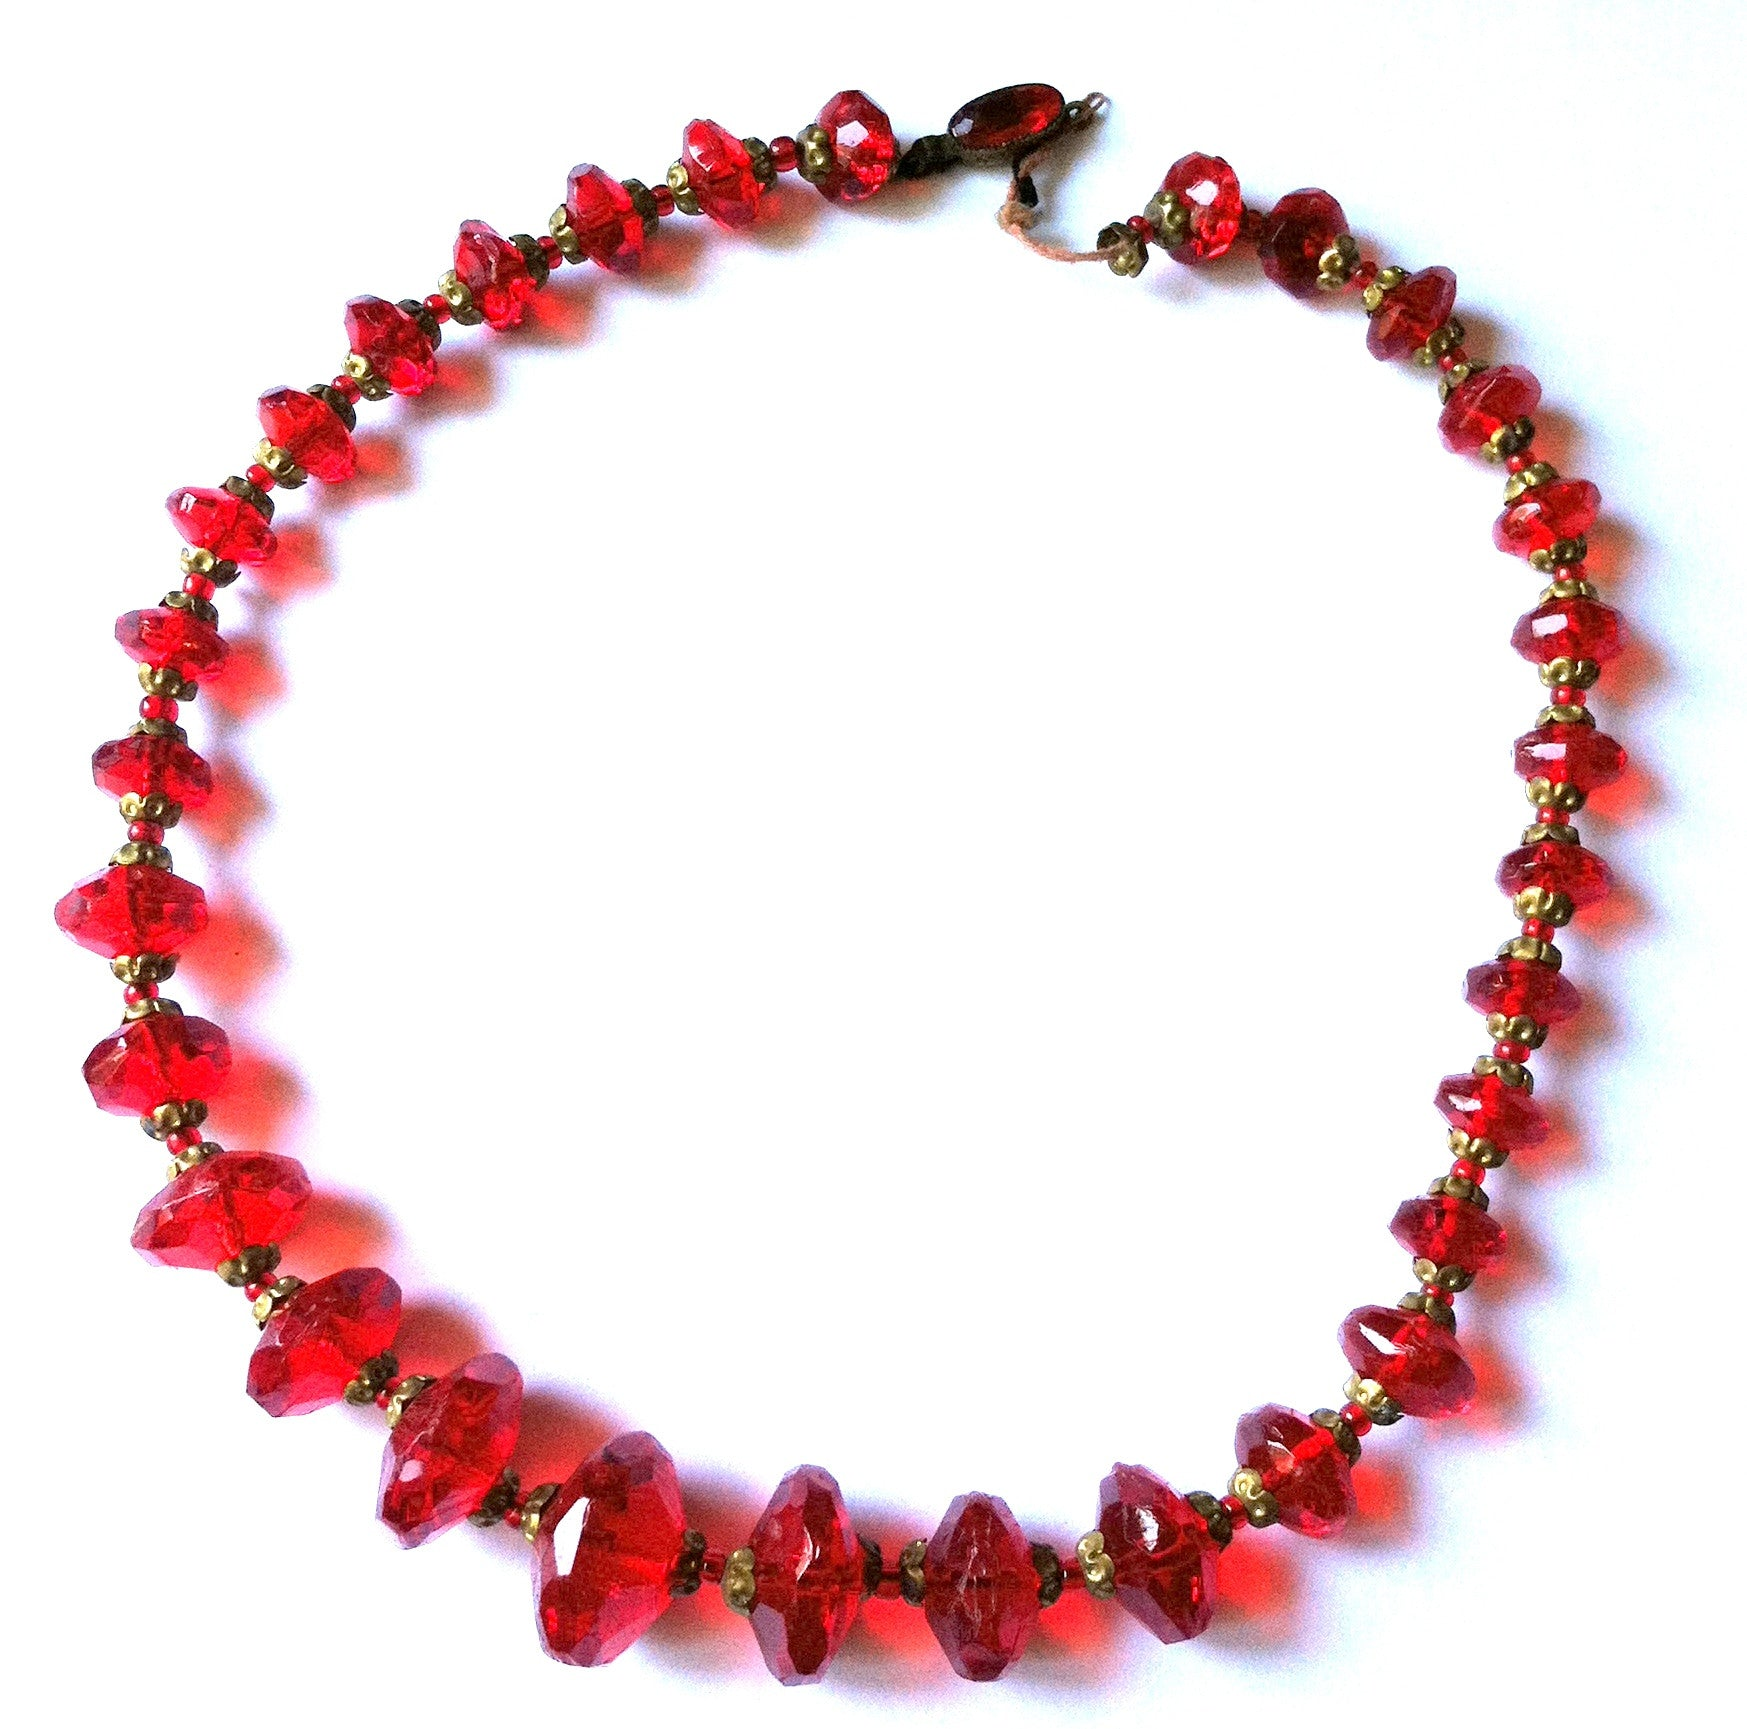 Brilliant Red Czech Glass Choker Necklace circa 1920s